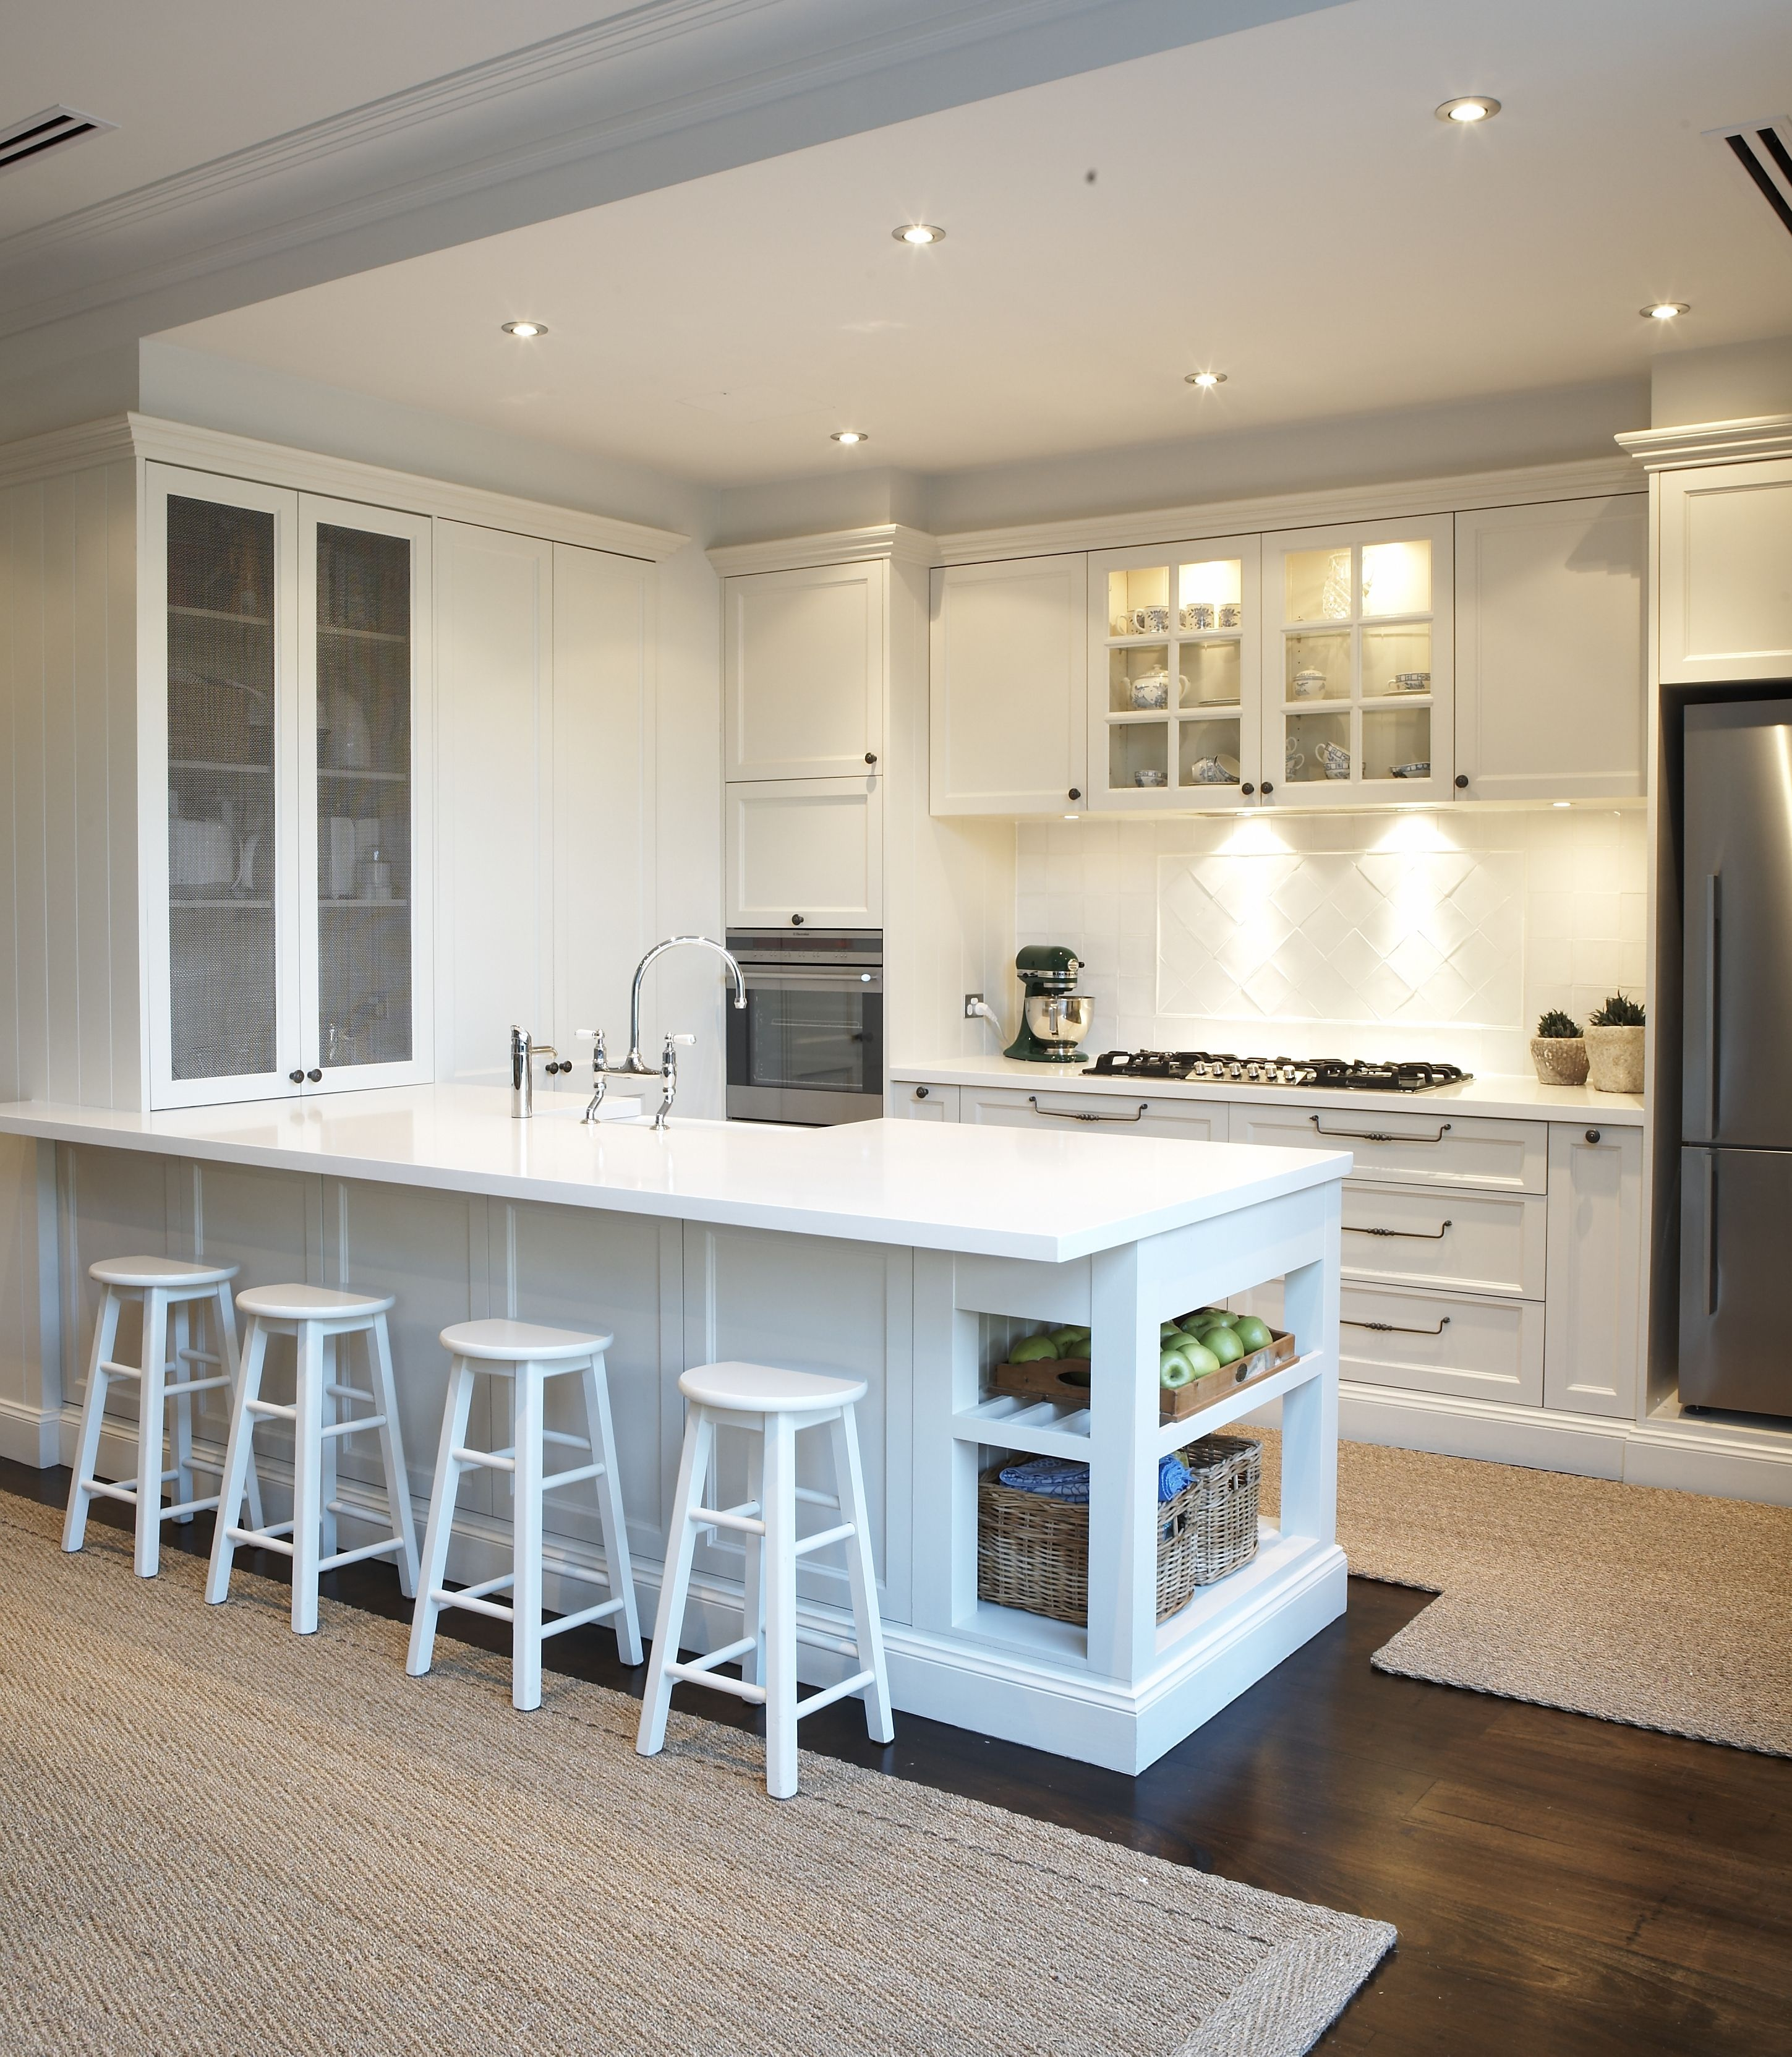 Provincial Kitchen, provincial, white, bar stools, downlights ...